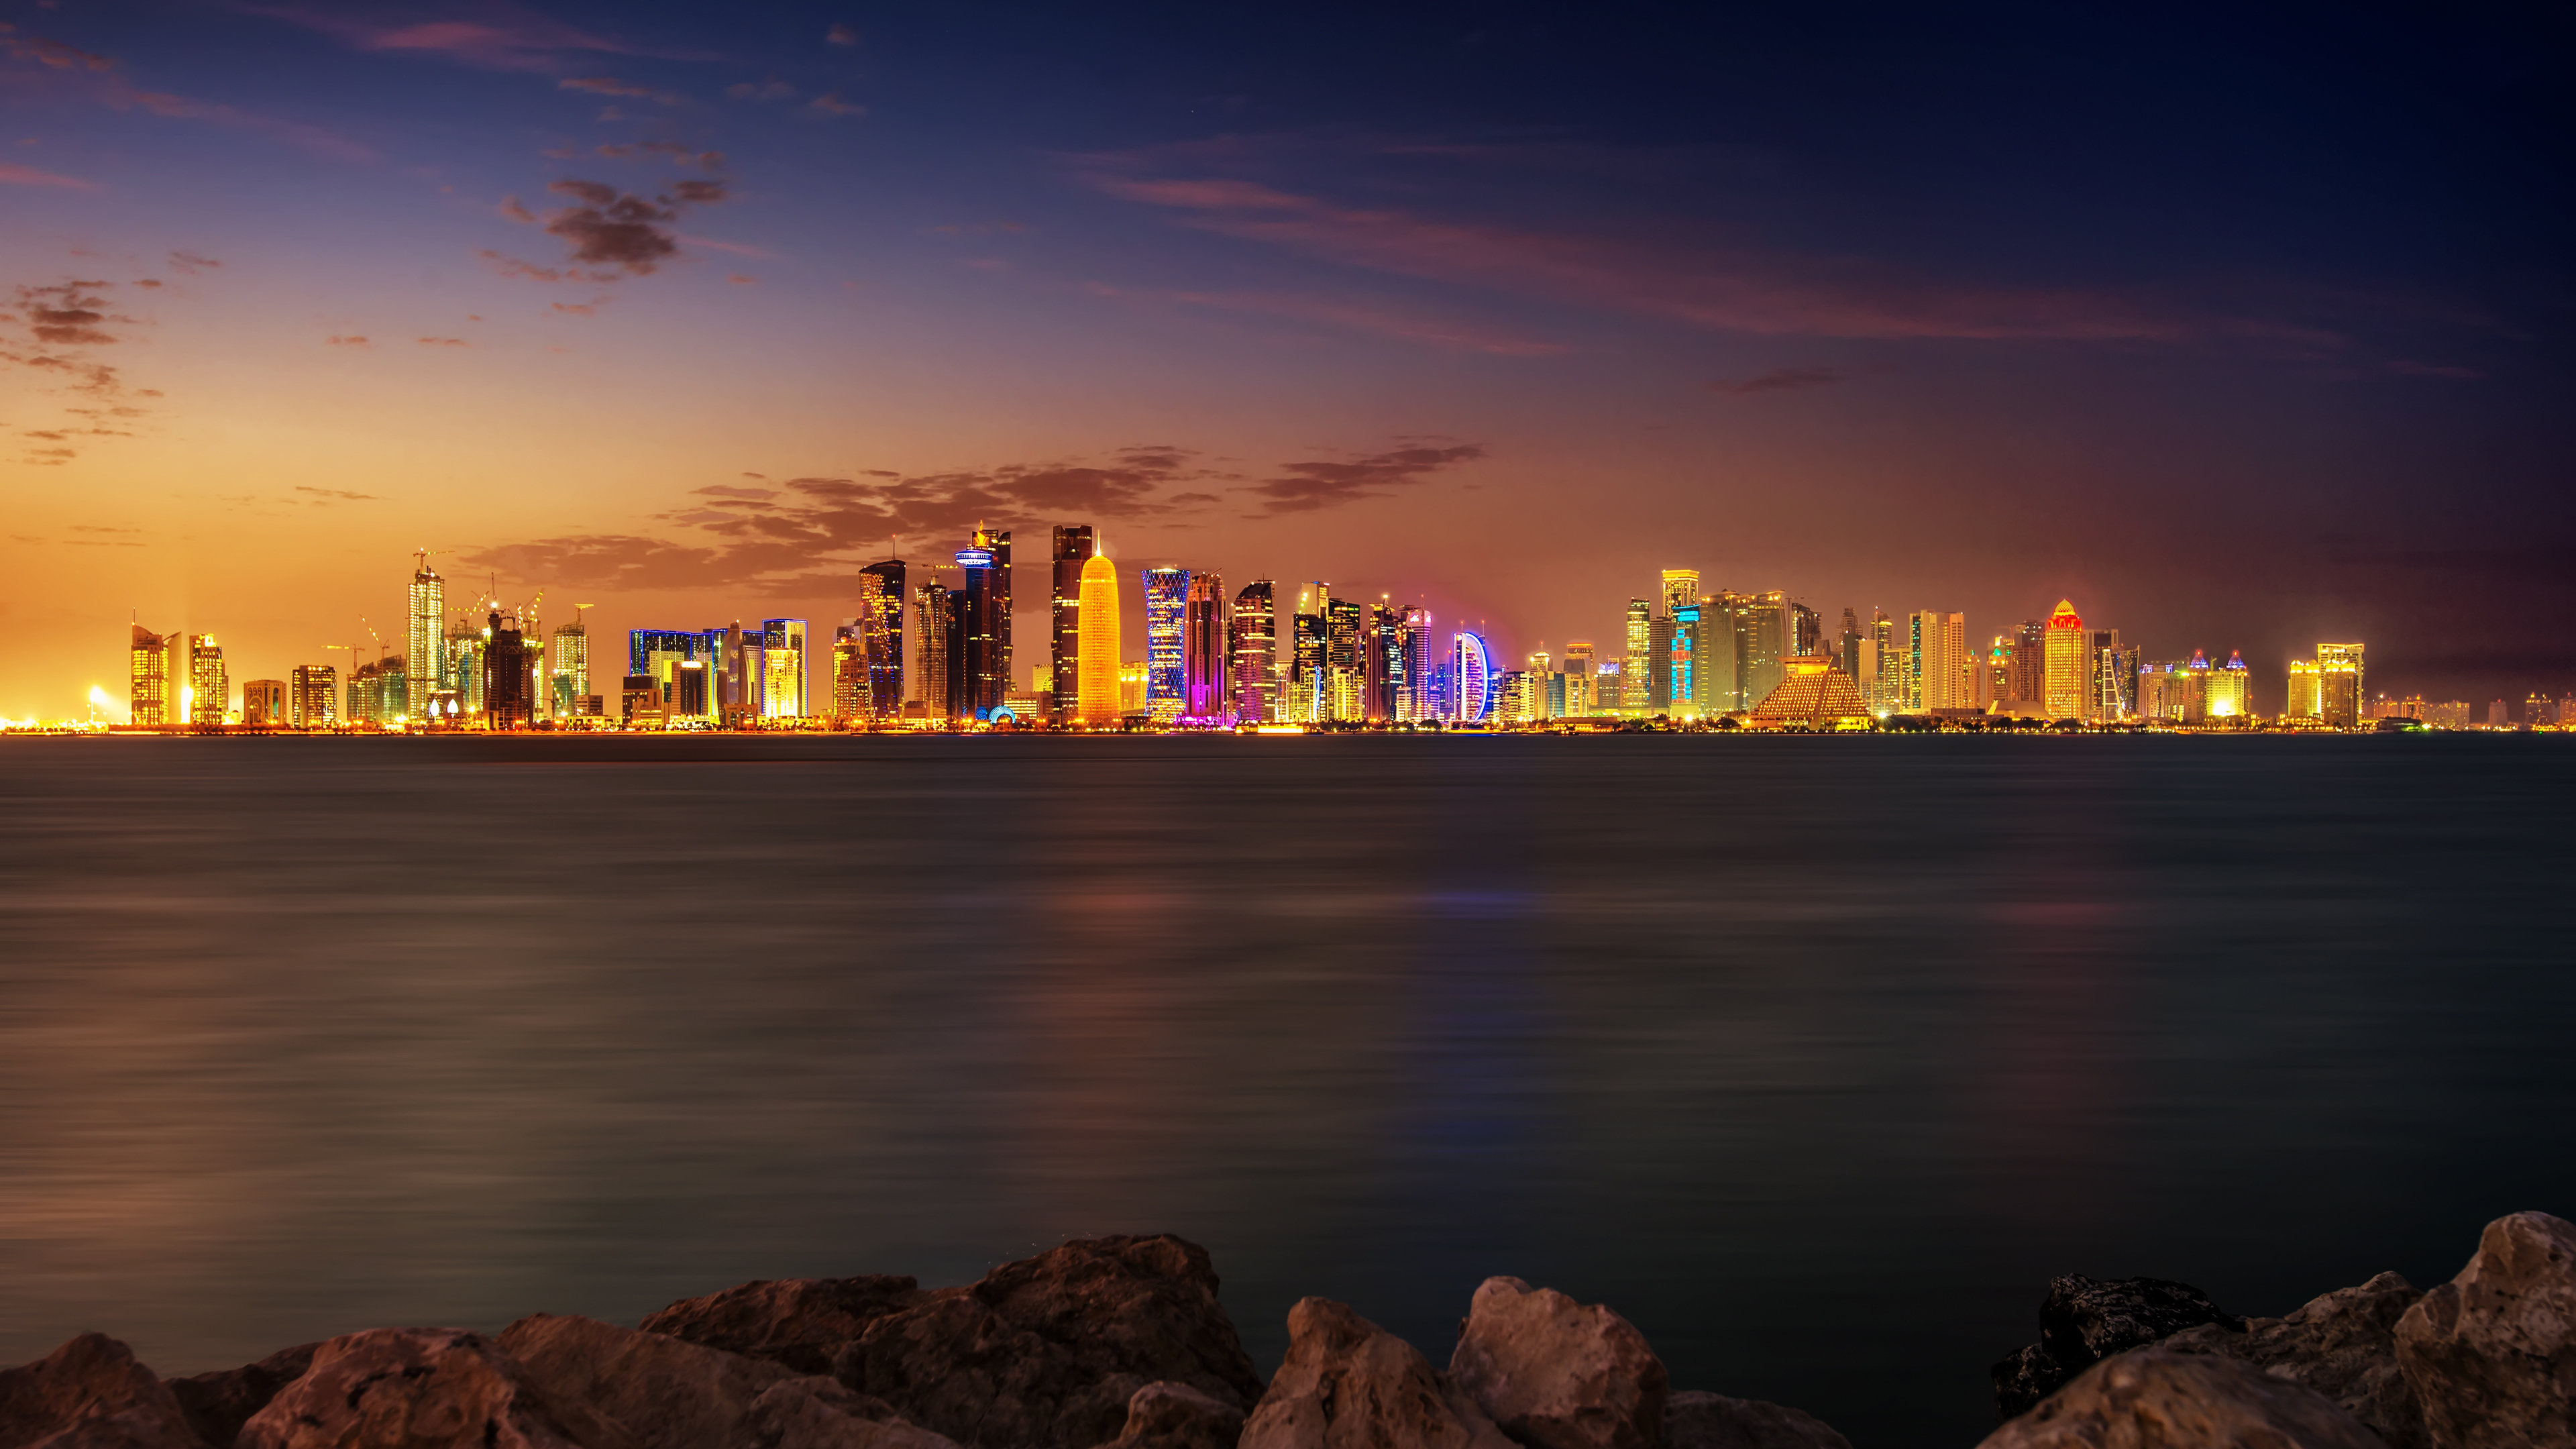 Free download Qatar wallpaper ID:484839 ultra hd 4k for computer